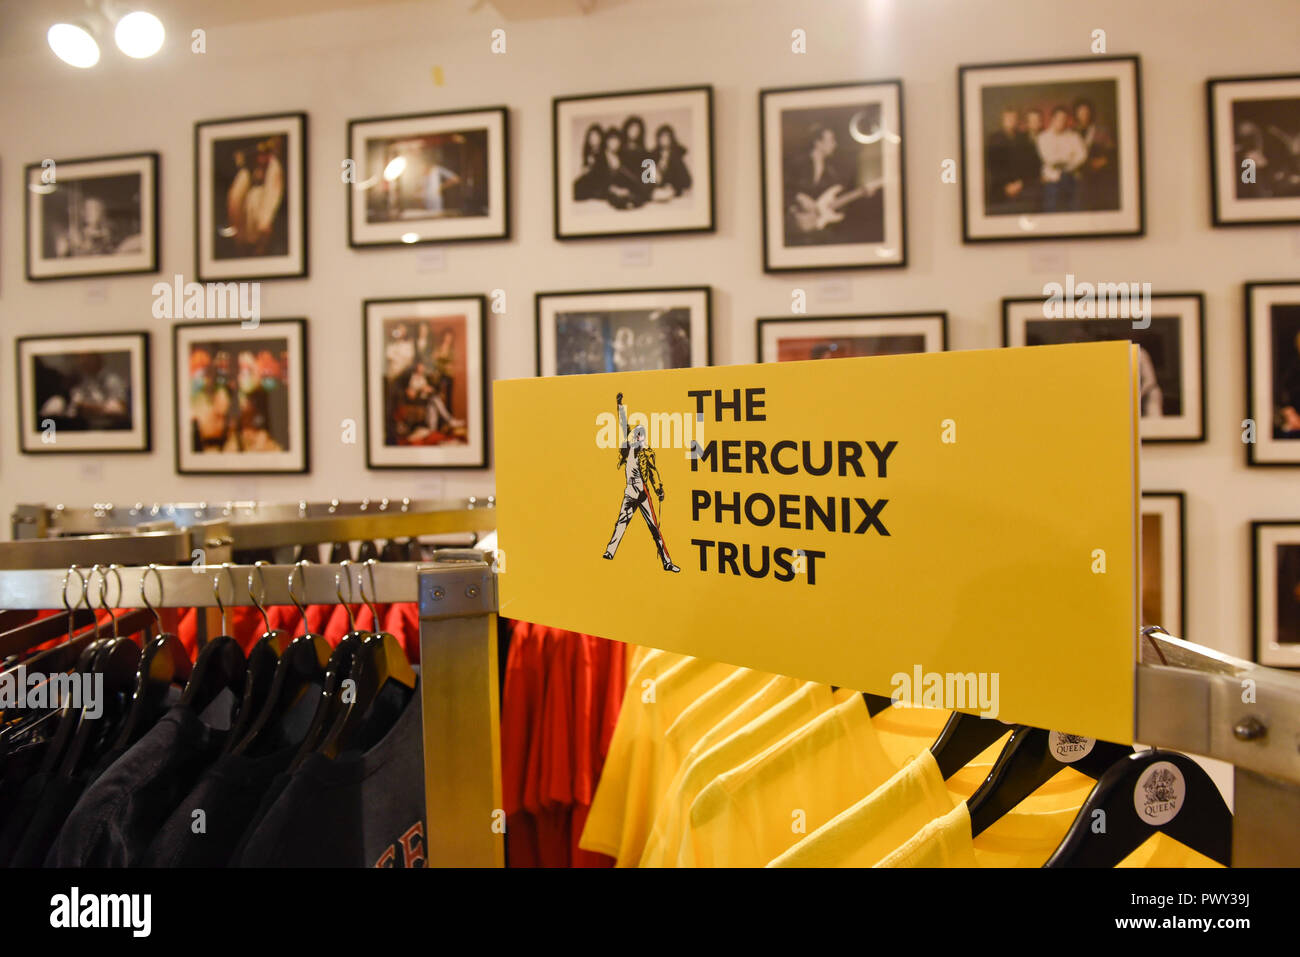 London, UK.  18 October 2018.  A Queen pop-up shop has opened in Carnaby Street.  Coinciding with the release next week of the movie 'Bohemian Rhapsody', the shop offers Queen music fans memorabilia, a display of stage costumes as well as archived Queen performance footage. Credit: Stephen Chung / Alamy Live News - Stock Image